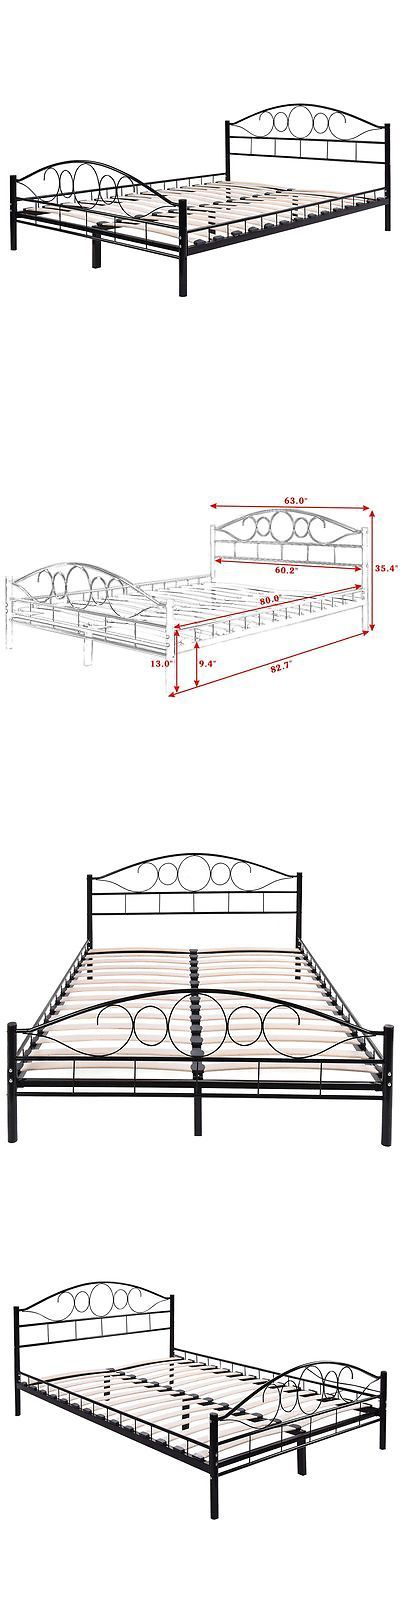 Bedding: Queen Size Wood Slats Steel Bed Frame Platform Headboard Footboard Bedroom Black -> BUY IT NOW ONLY: $109.99 on eBay!